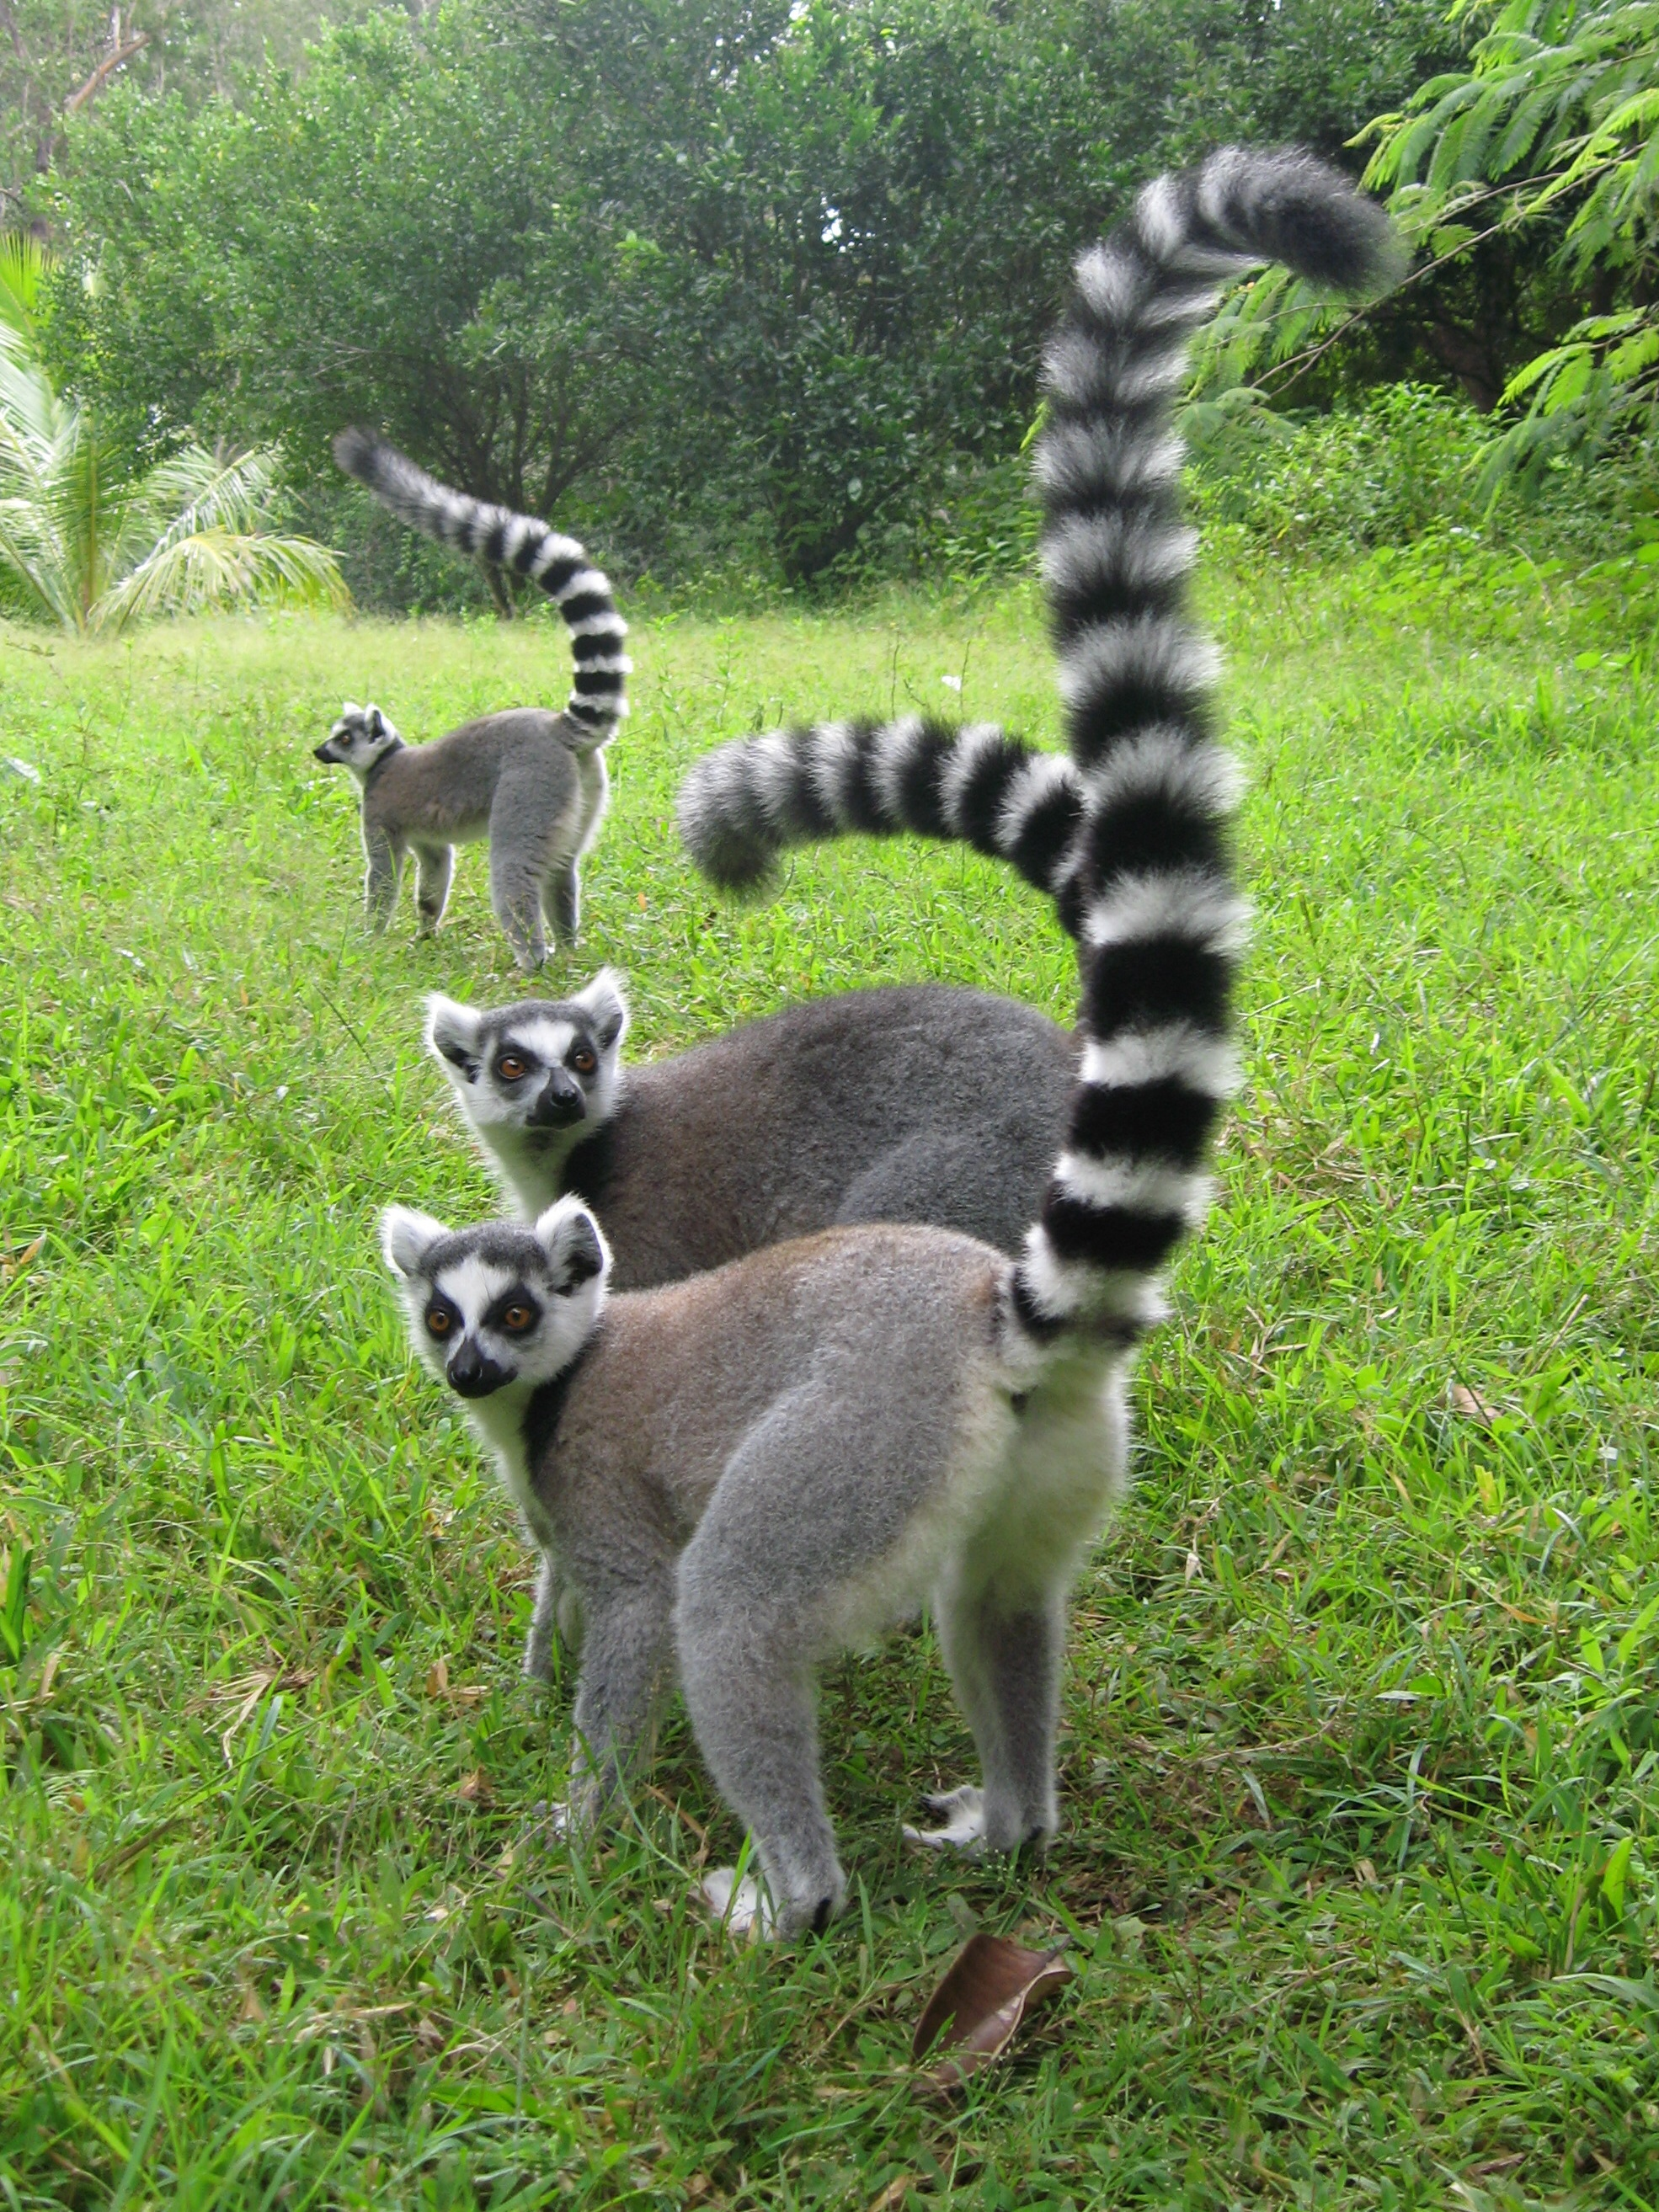 The ring-tailed lemur ...